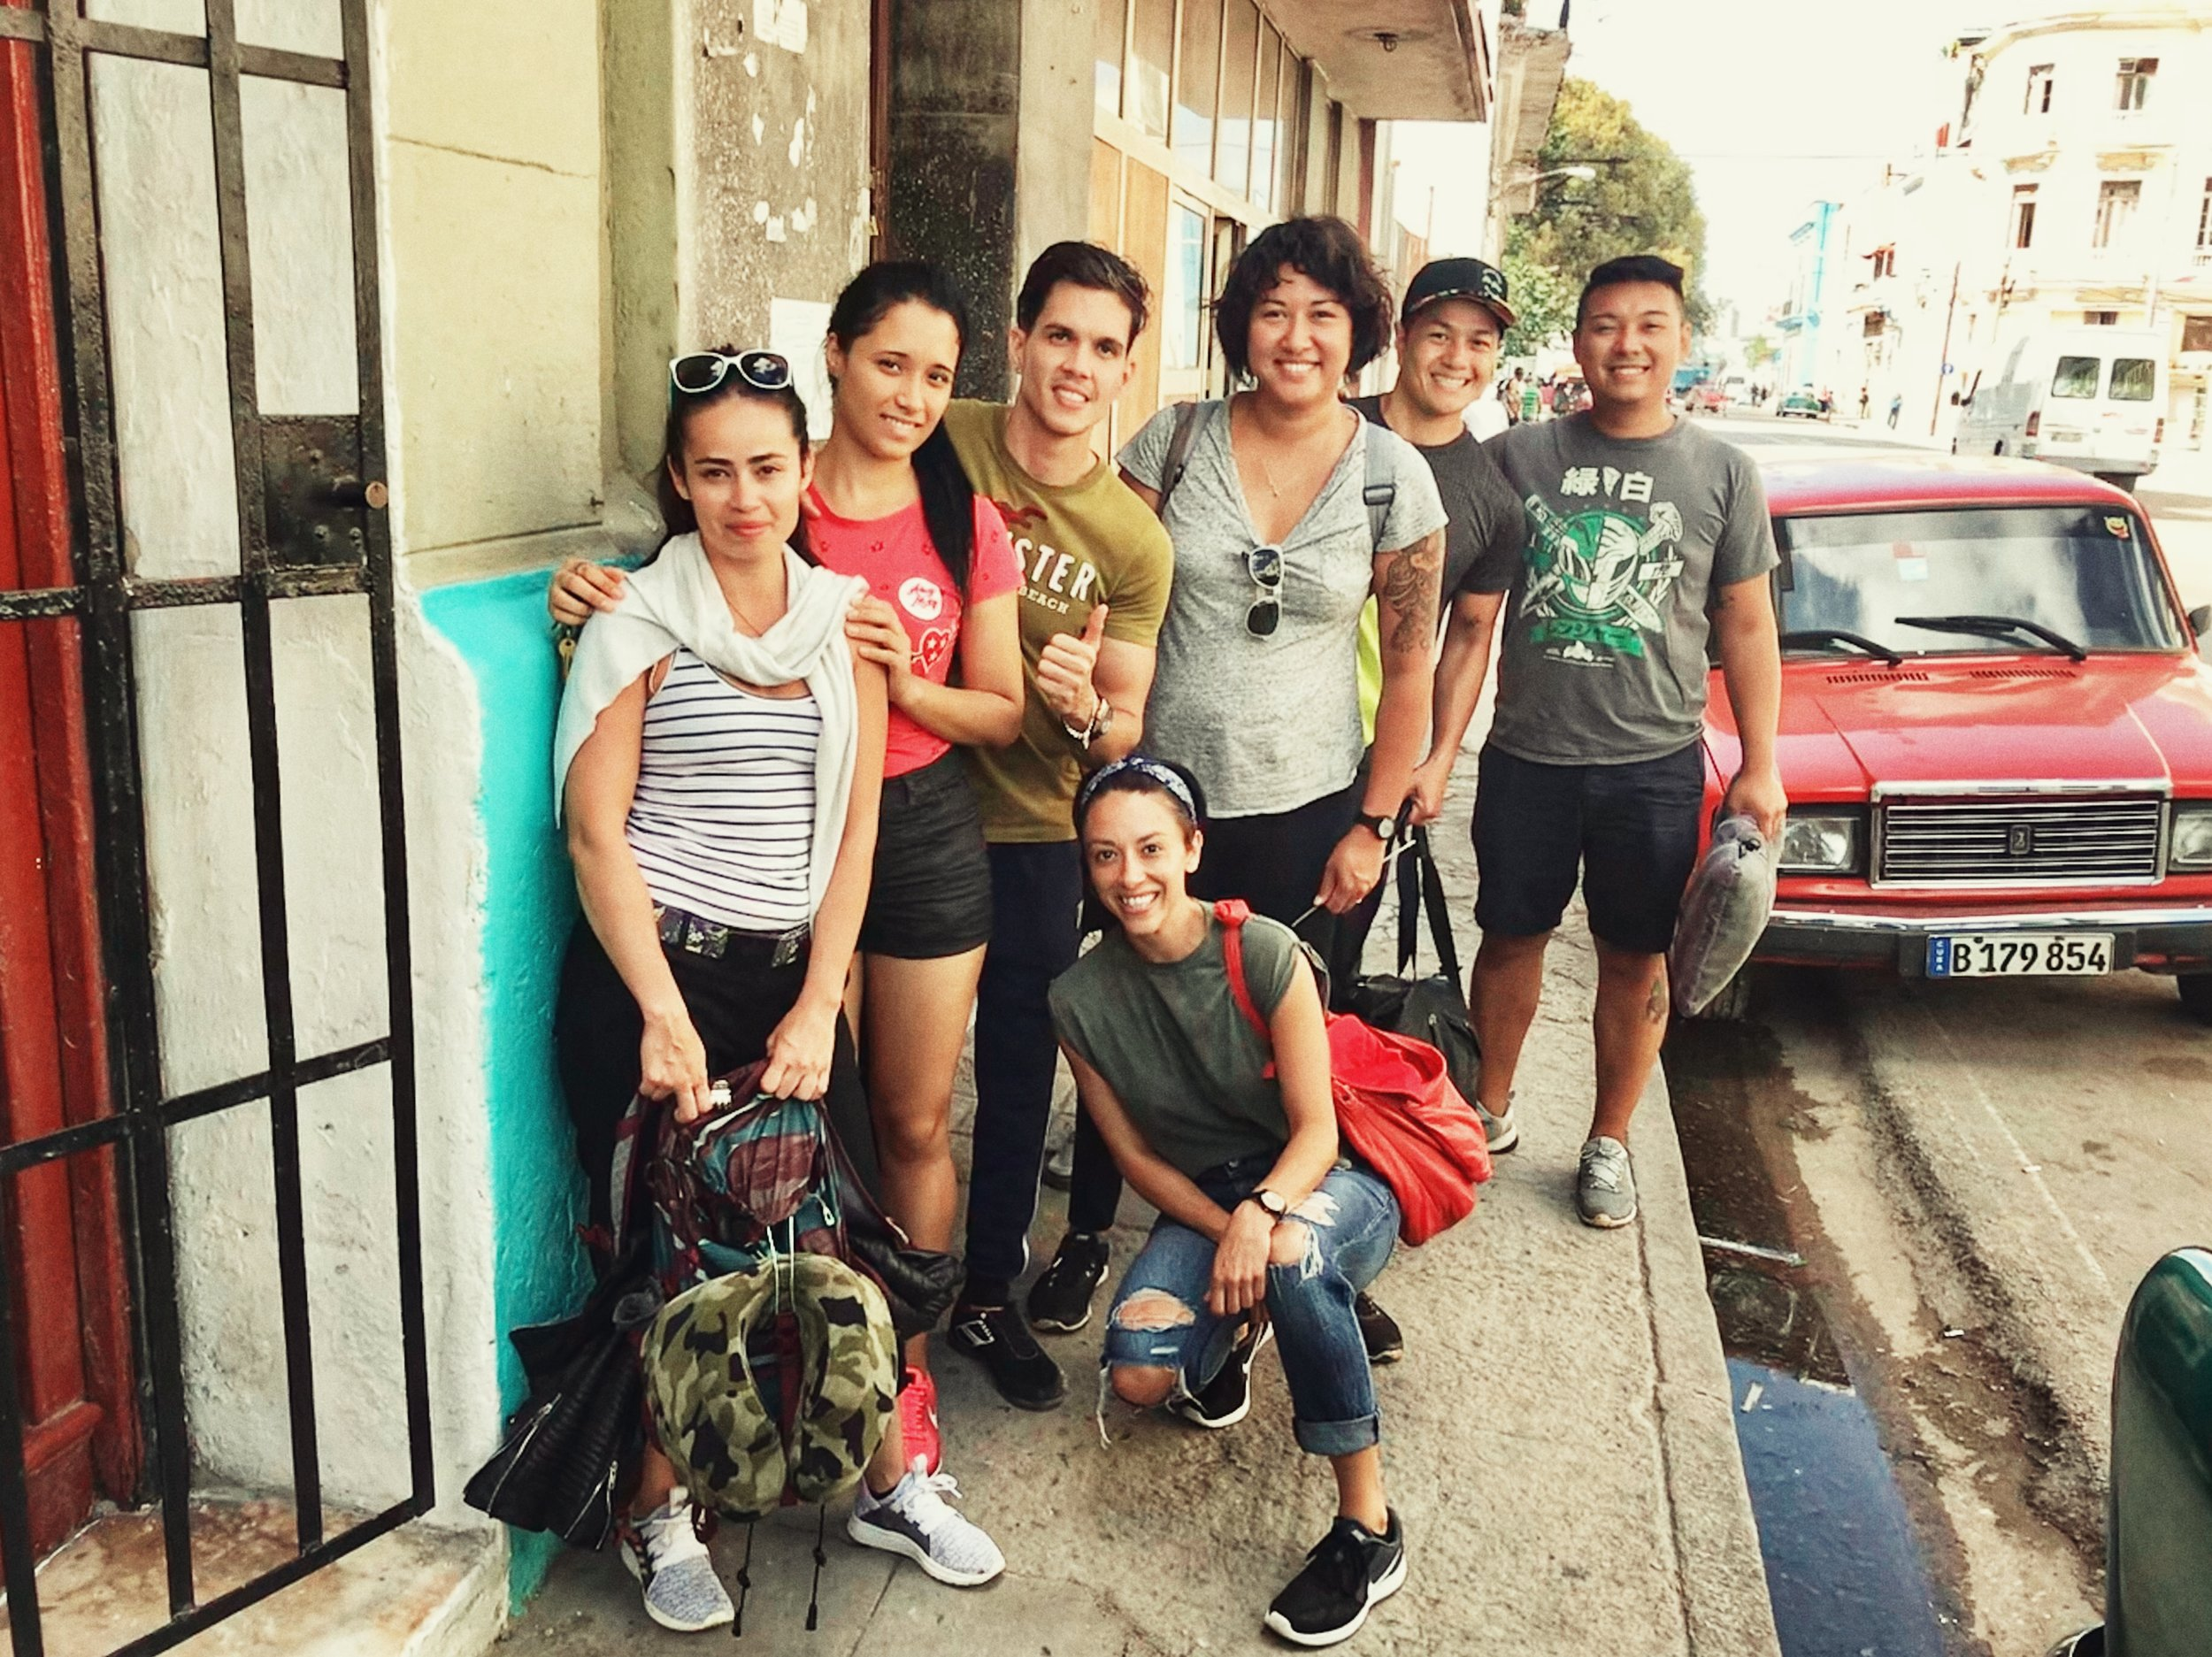 with our Airbnb hosts in Havana, Jose and Yanetsi